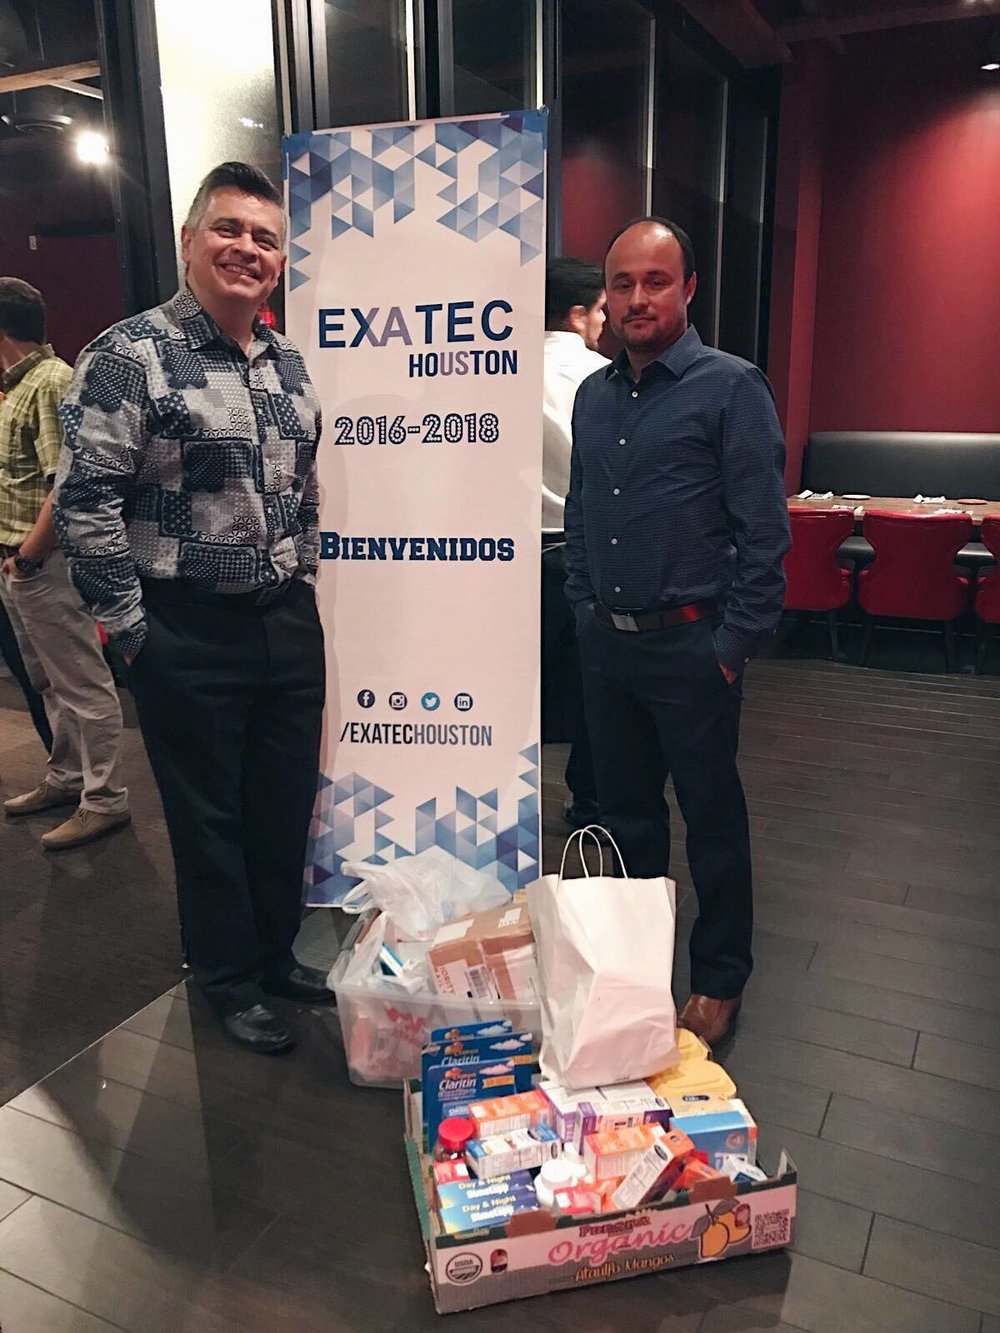 Exatec Houston - The Exatec Houston community generously held a donation drive to collect needed medicine for children in Venezuela. Gracias!